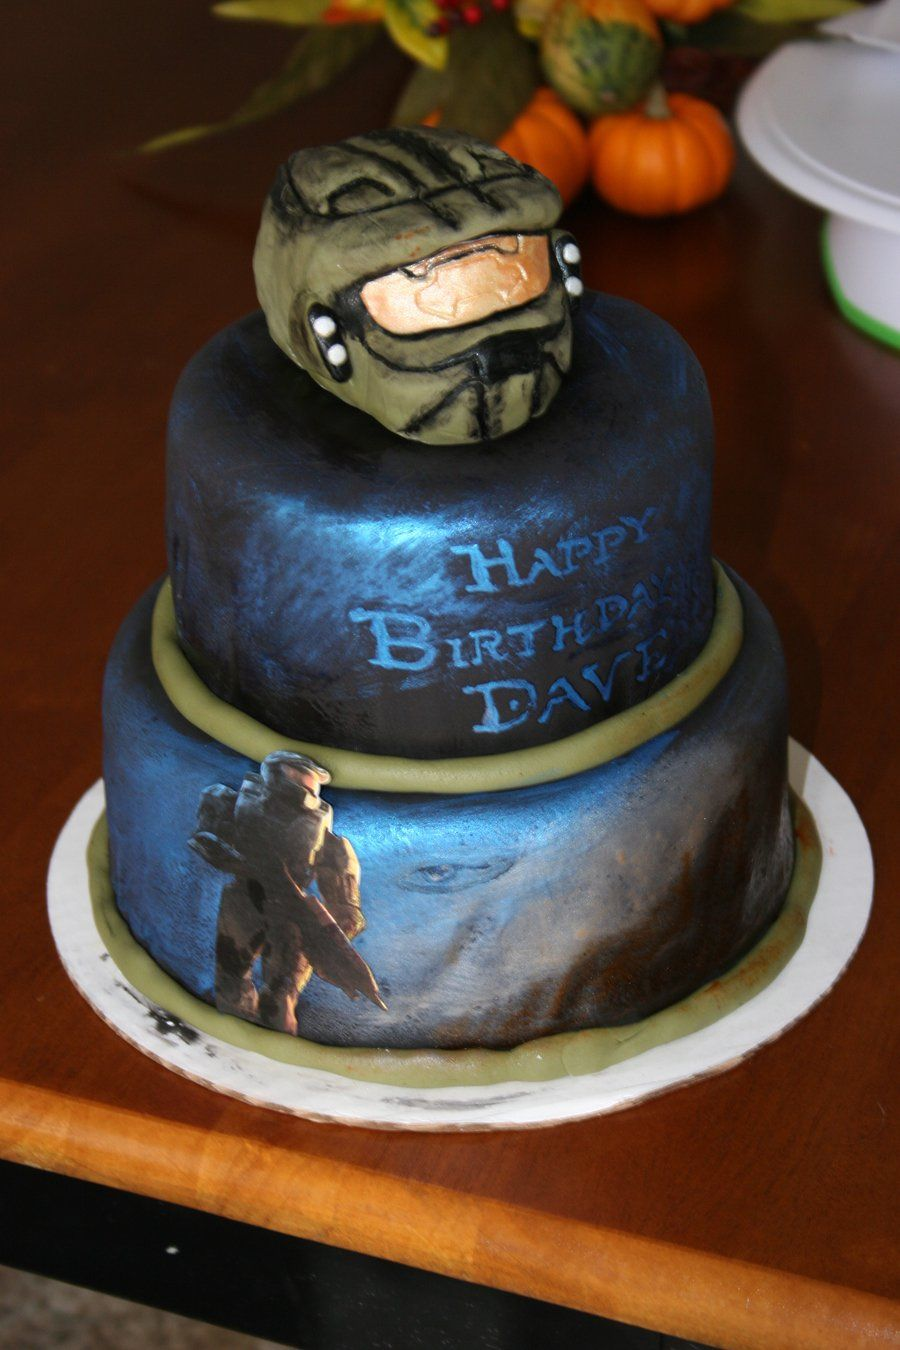 Halo Birthday Cake My husbands bf is really into the video game